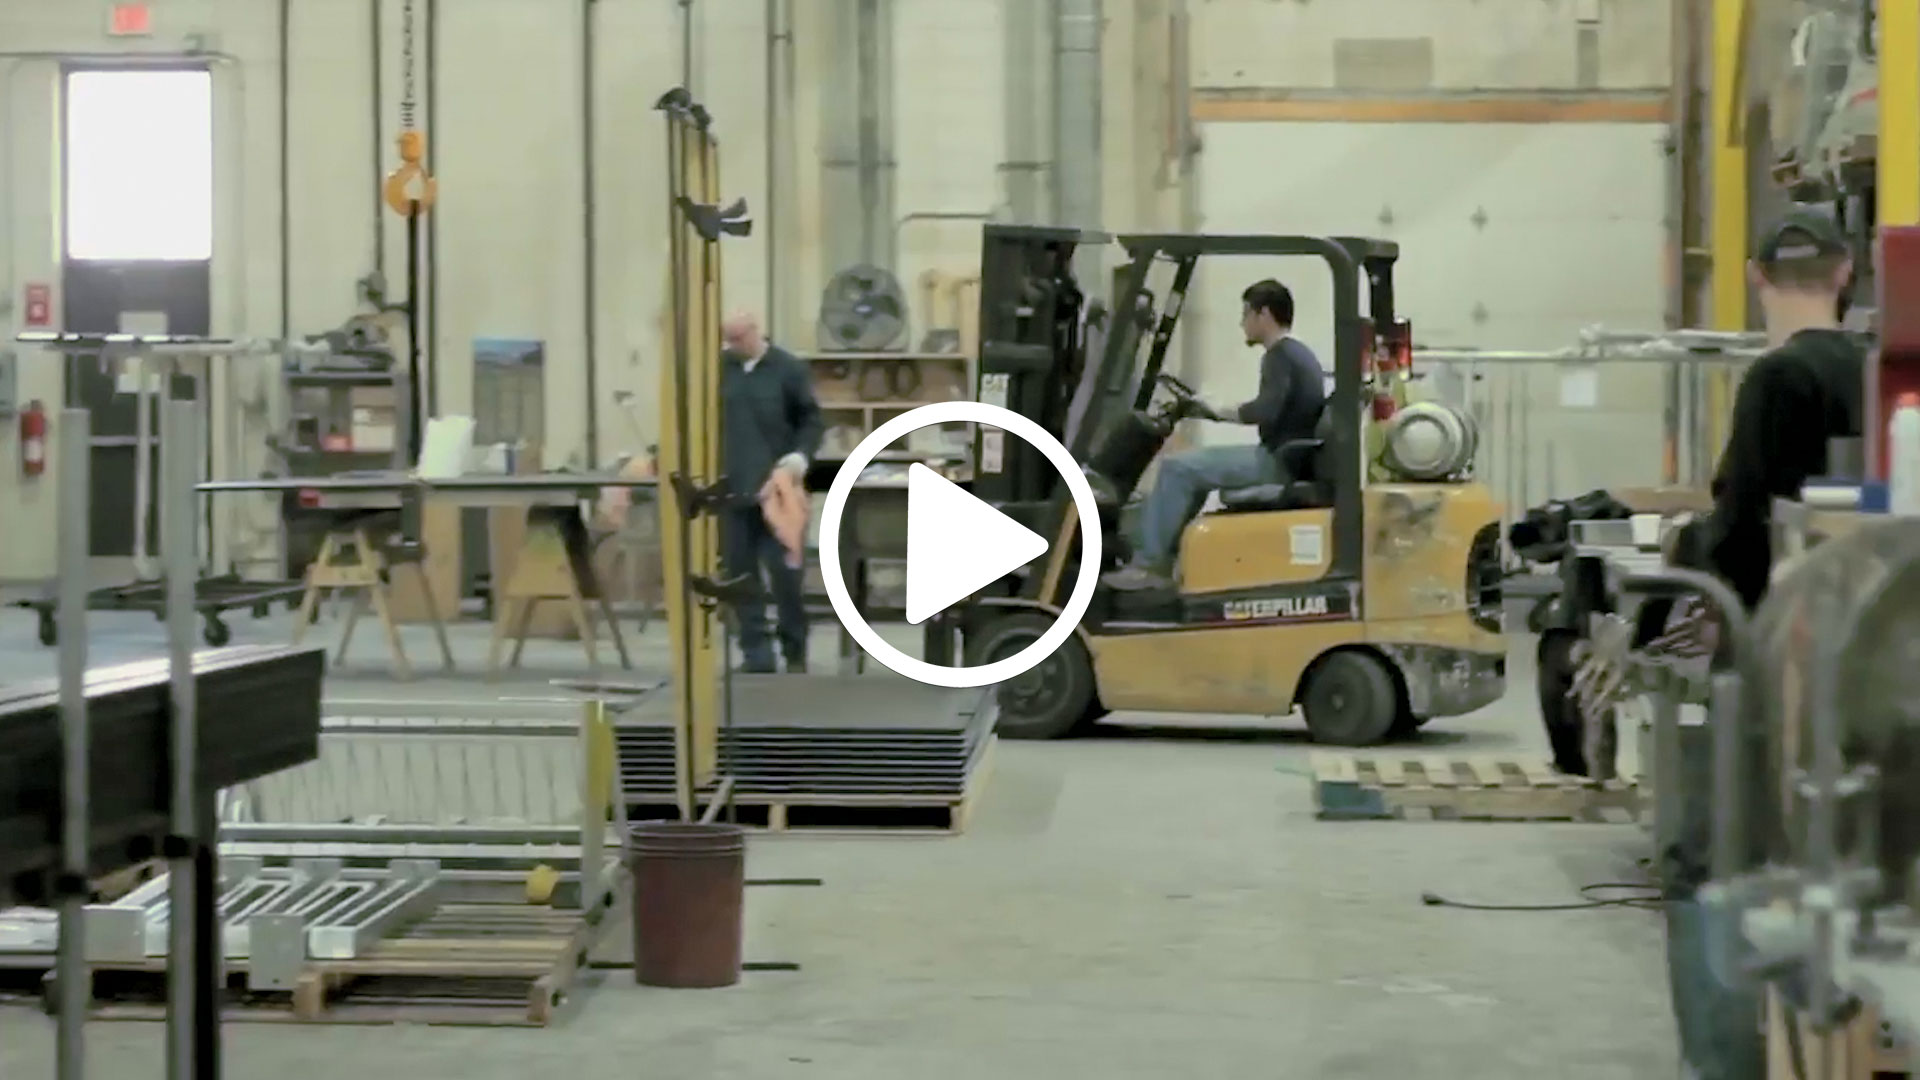 Watch our careers video for available job opening Forklift Operator & Production Workers in Jackson, MN